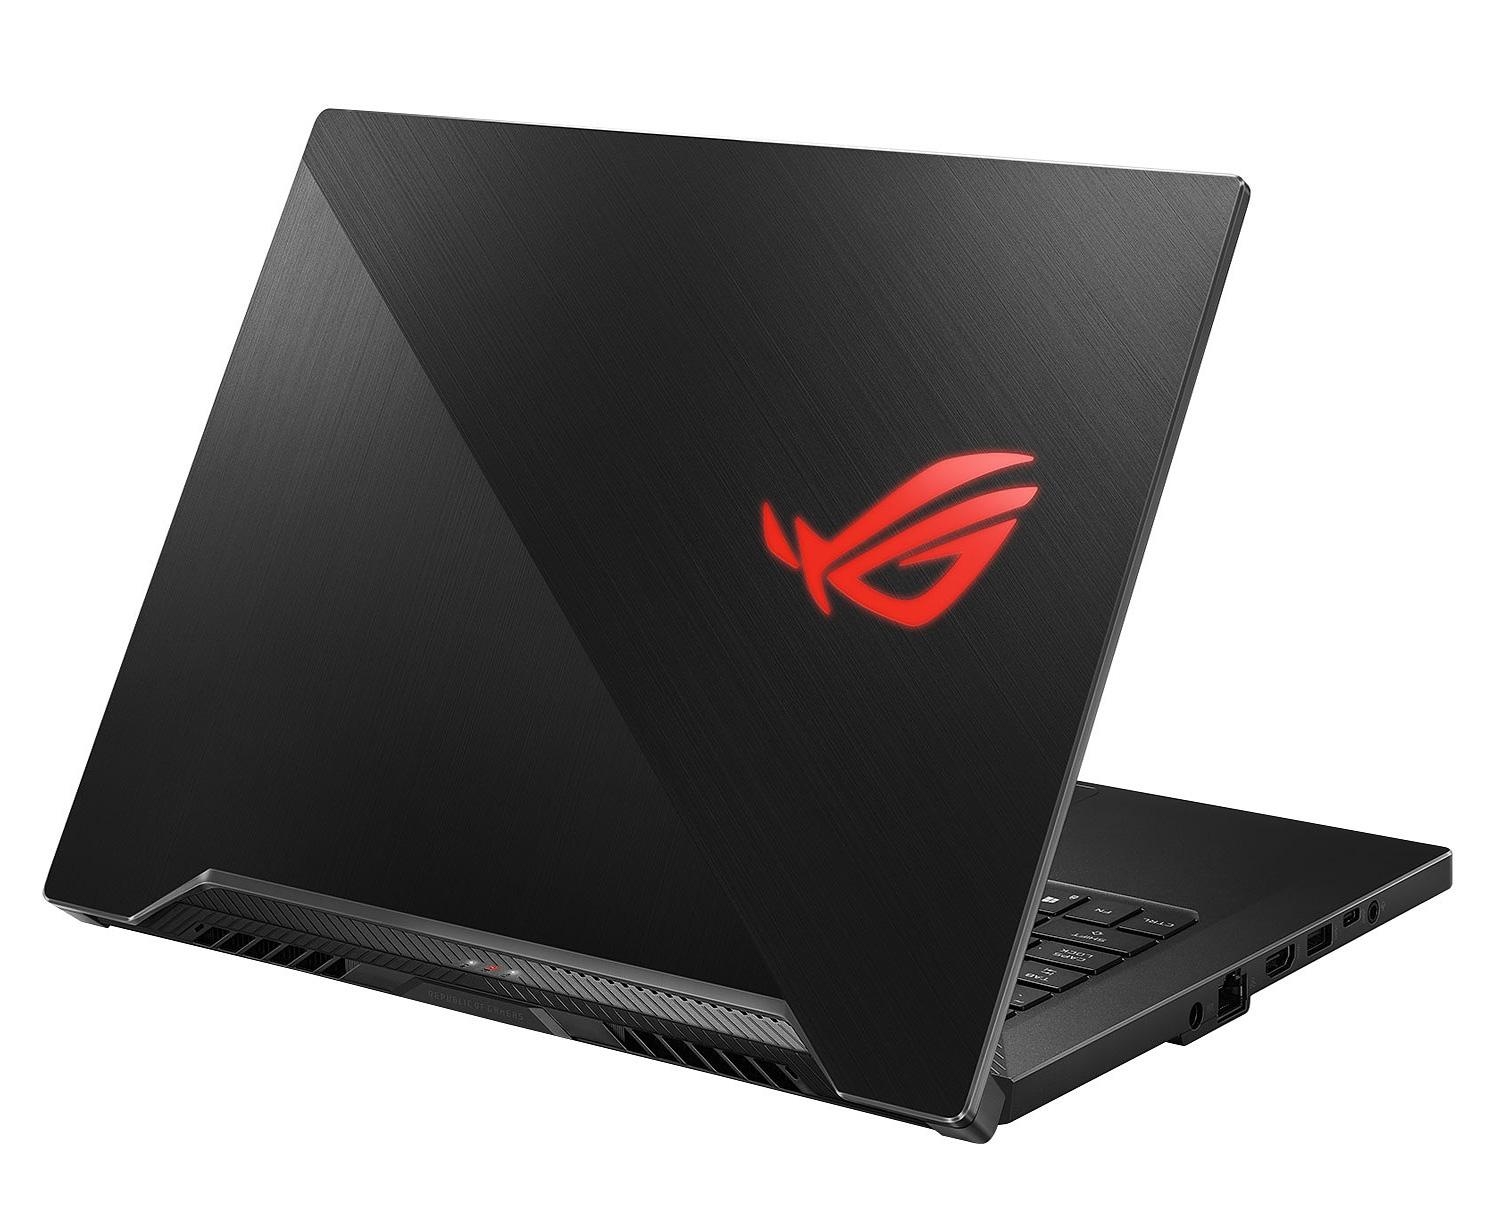 Ordinateur portable Asus ROG Zephyrus G GU502GU-ES003R - GTX 1660 Ti, IPS 144Hz - photo 5